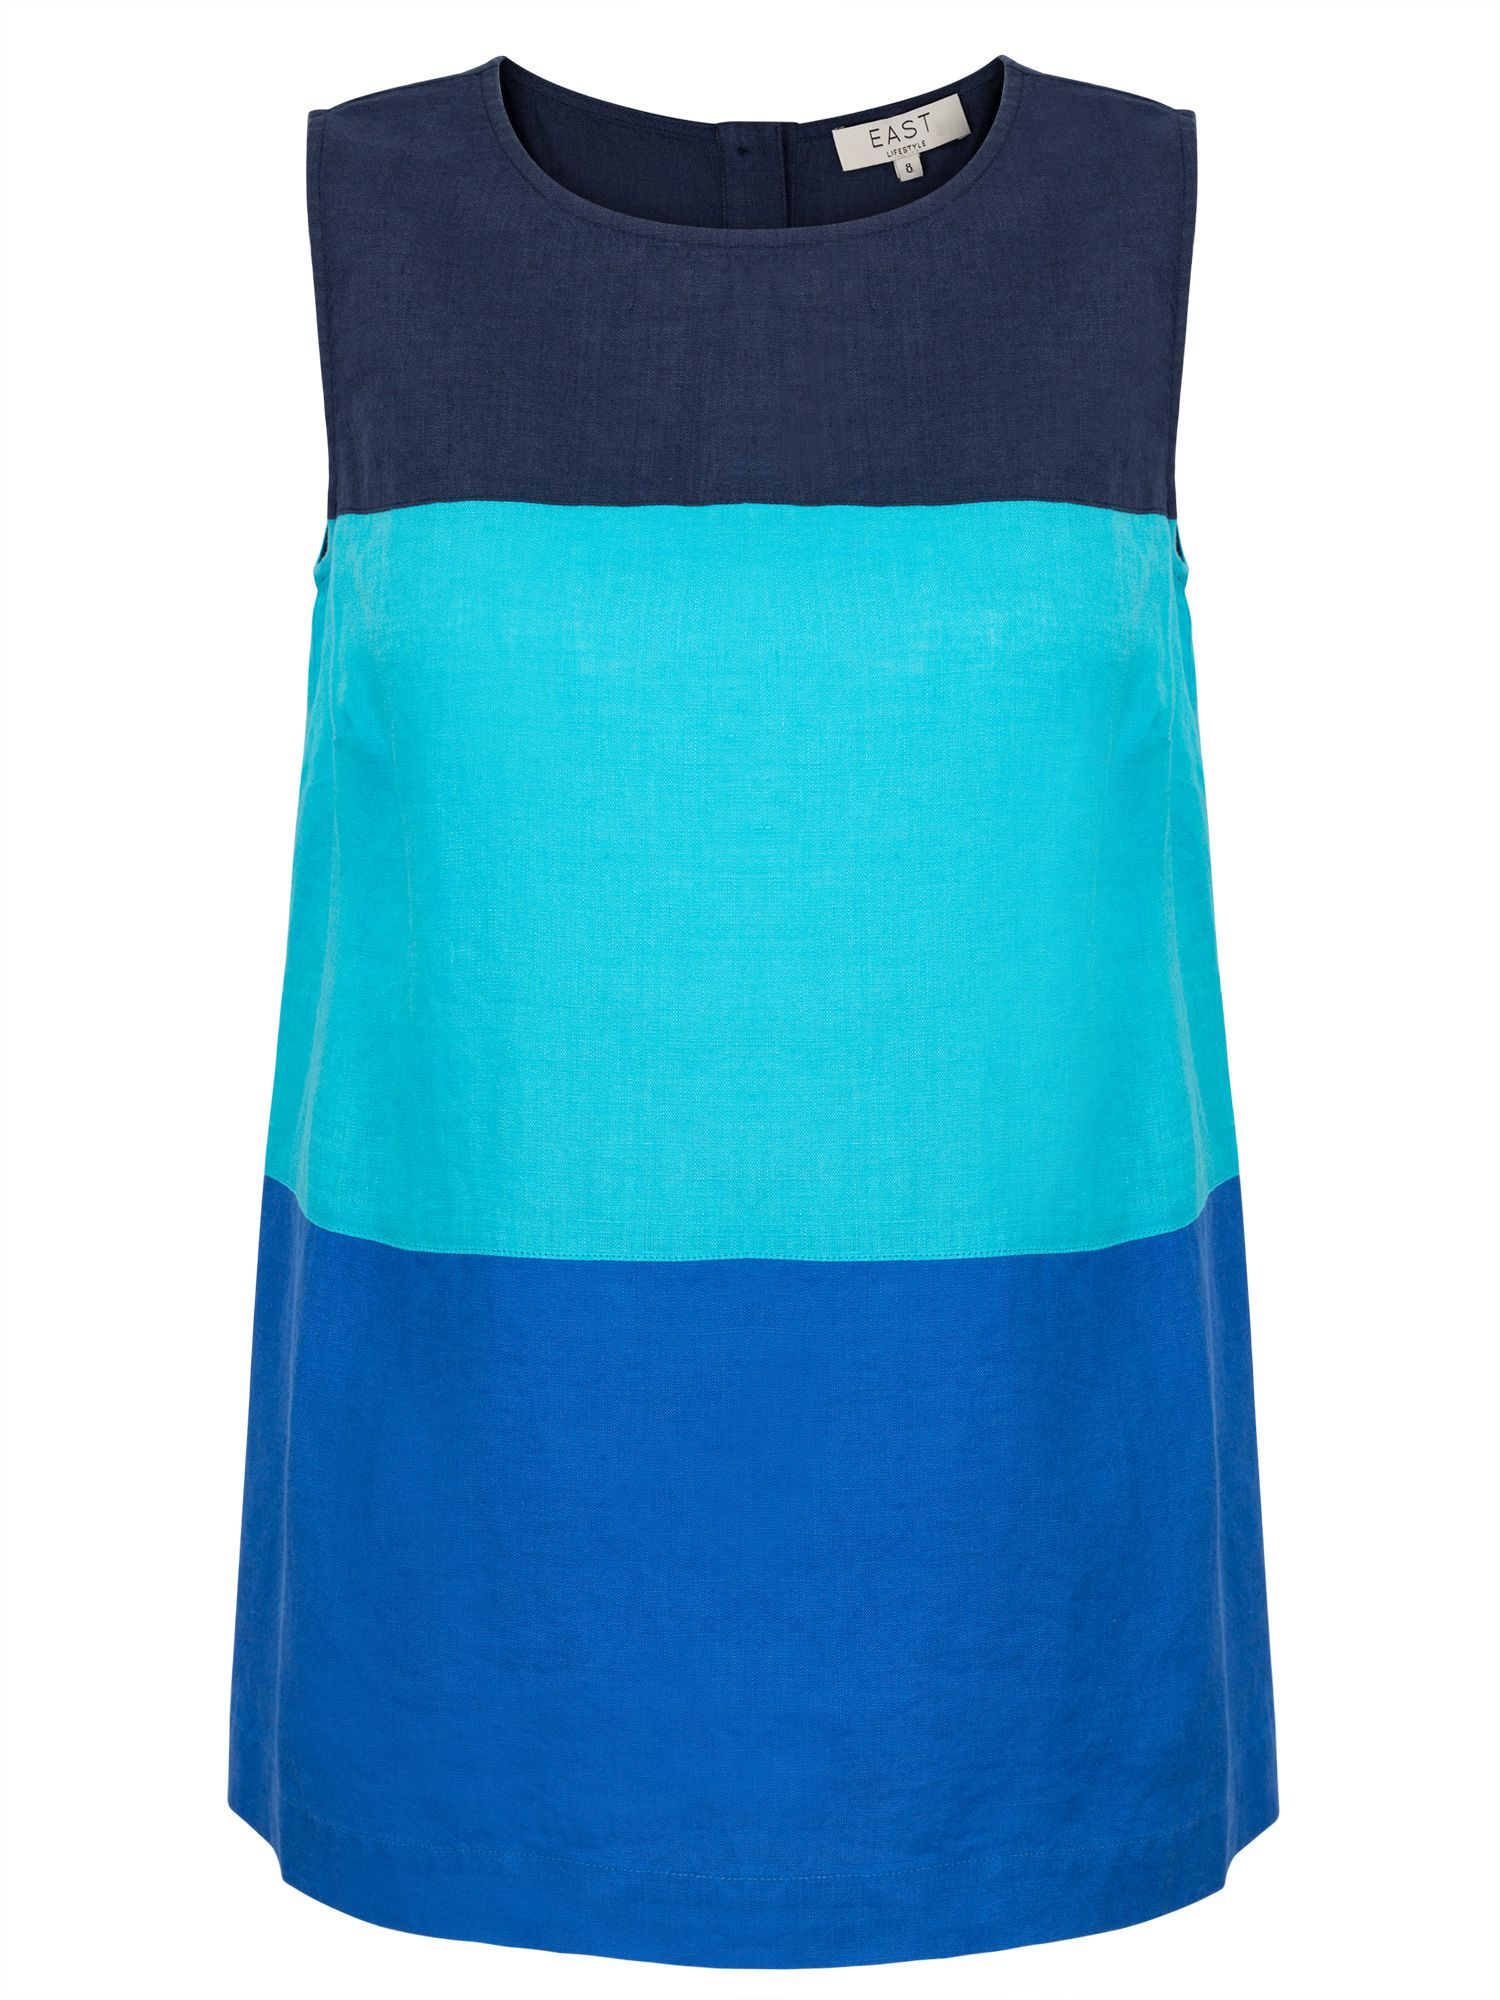 East Linen Colourblock Sleeveless Top, Blue